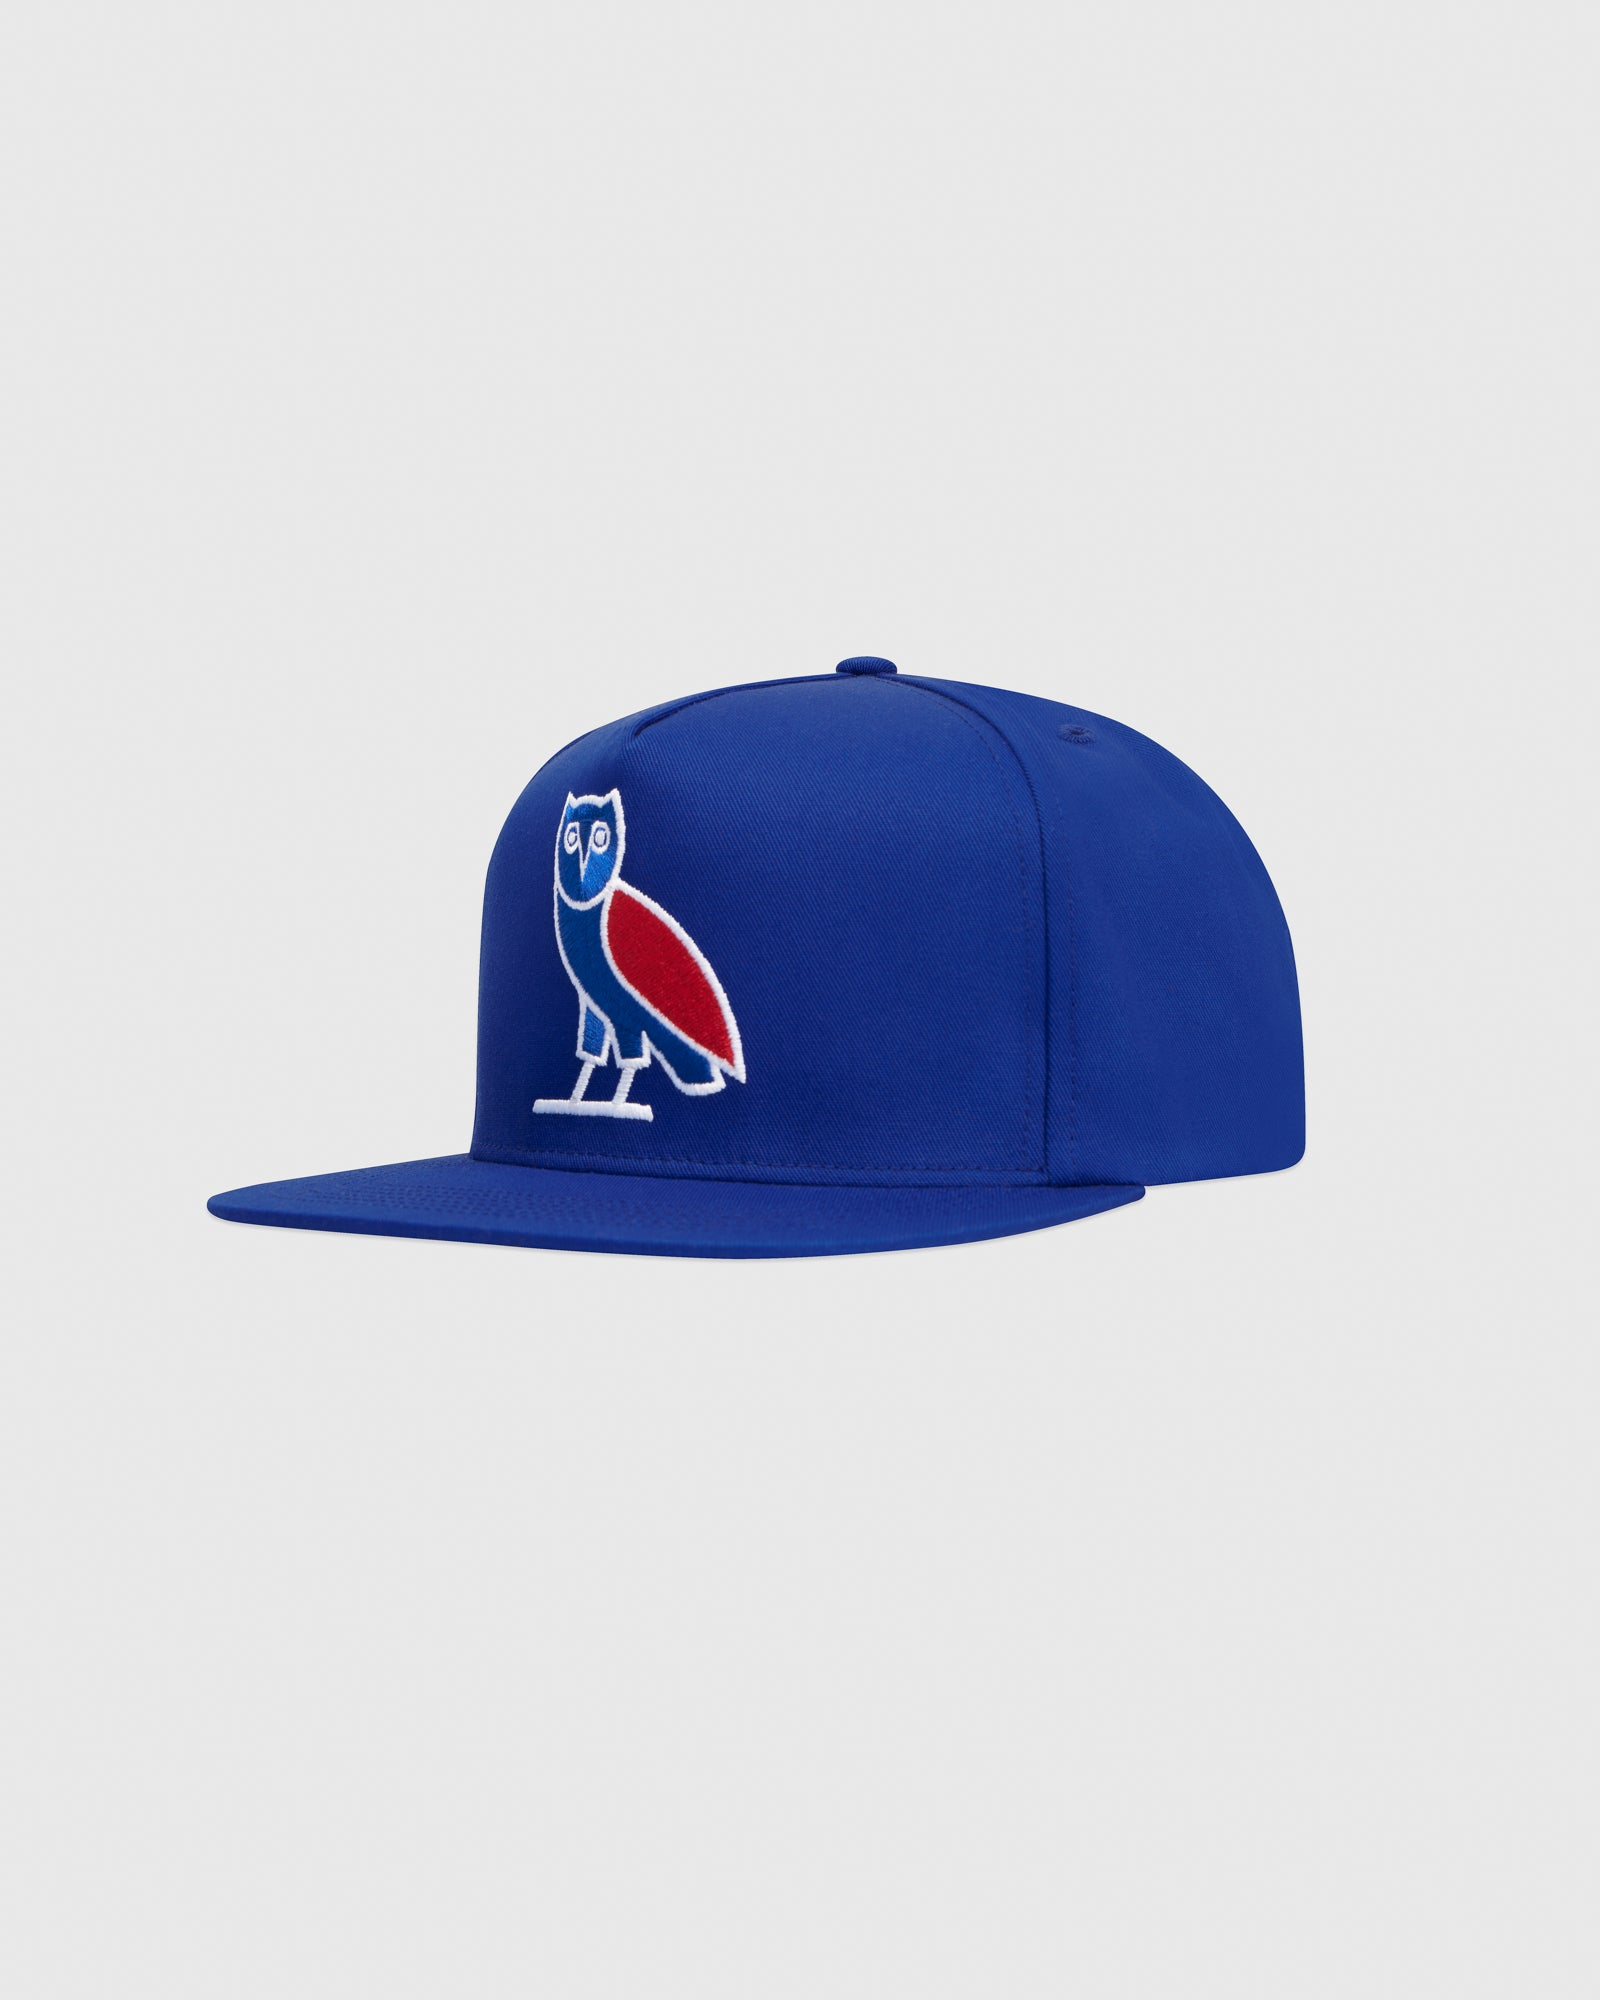 OVO FRANCHISE SNAPBACK - ROYAL BLUE IMAGE #3